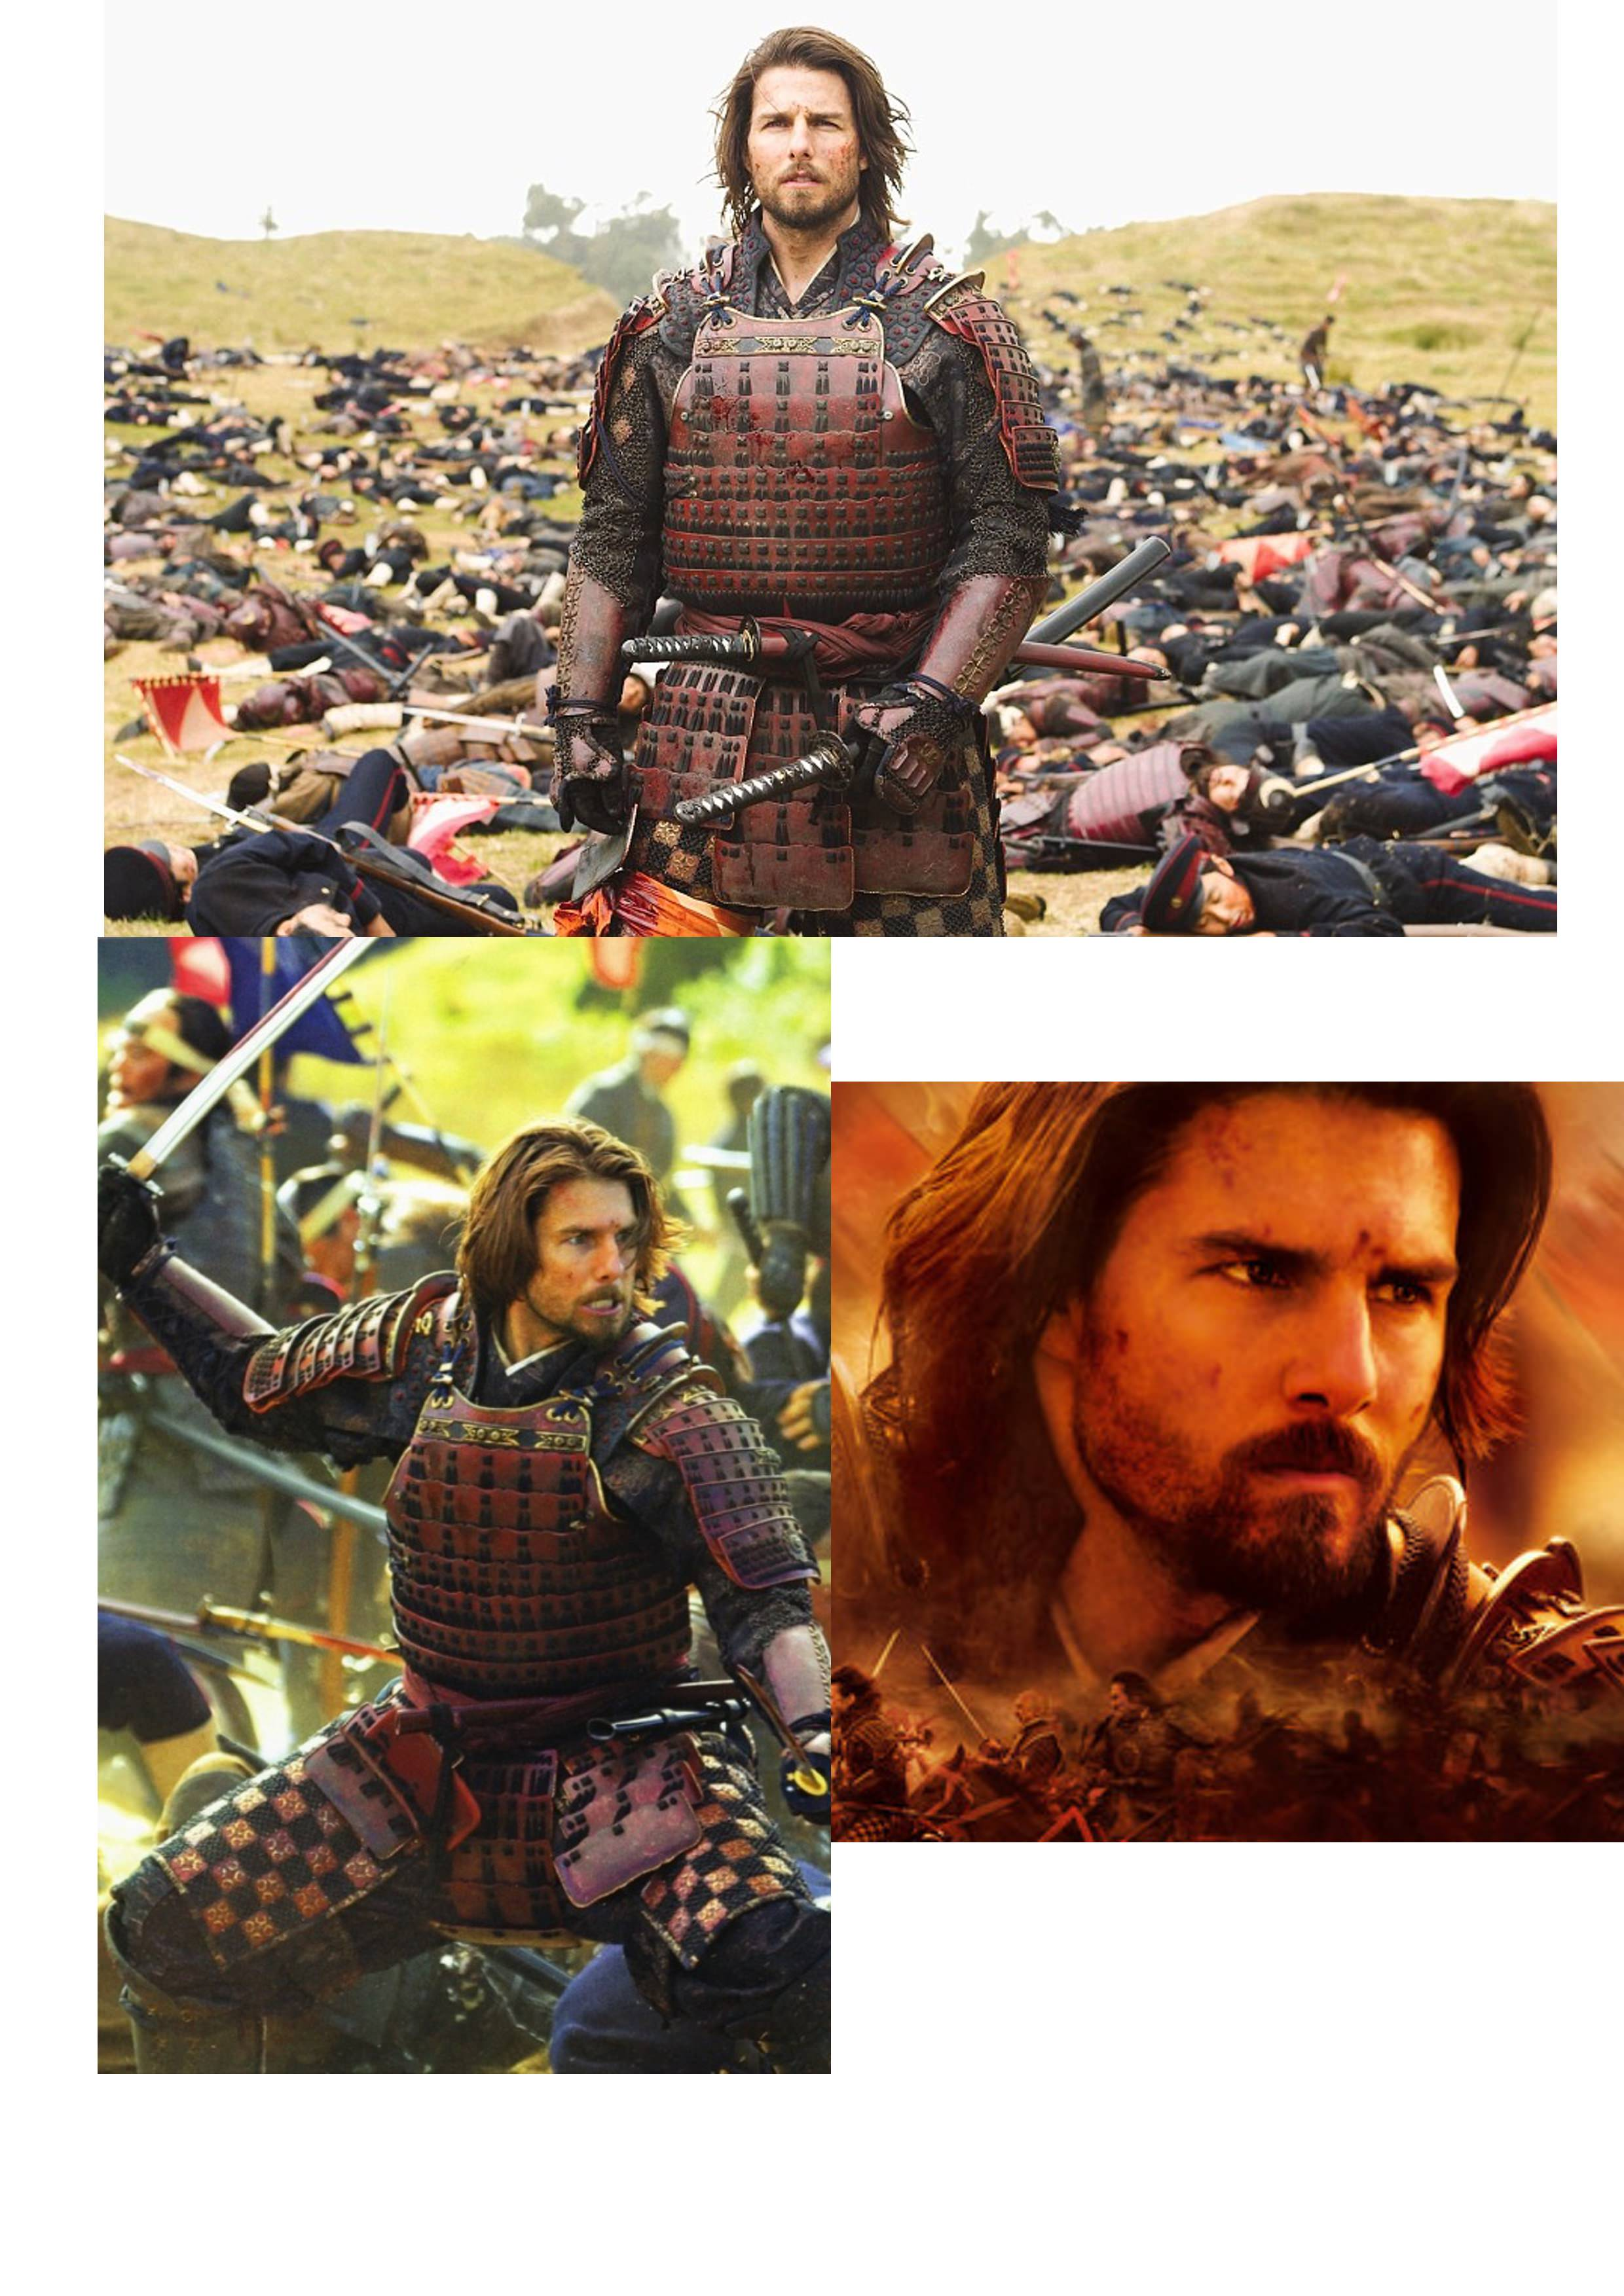 movie the last samurai essay The last samurai film analysis essay 7 october 2018  temple grandin movie review essay meaning of dissertation quiz essay on preservation of culture is important action ancient essay theater word living with adhd essay extension essay my aim in life essay in marathi dissertation juridique droit administratif au socialisme allemand.